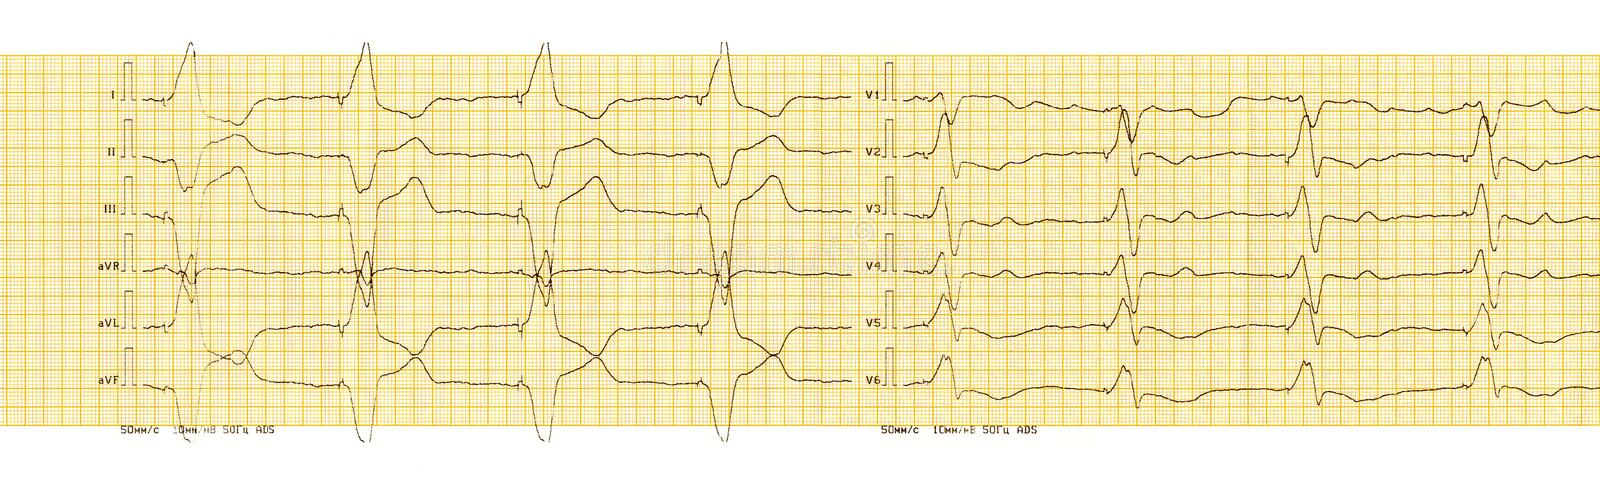 ECG with rhythm of artificial pacemaker ventricular stimulation. The ECG tape with the rhythm of an artificial pacemaker ventricular stimulation stock images